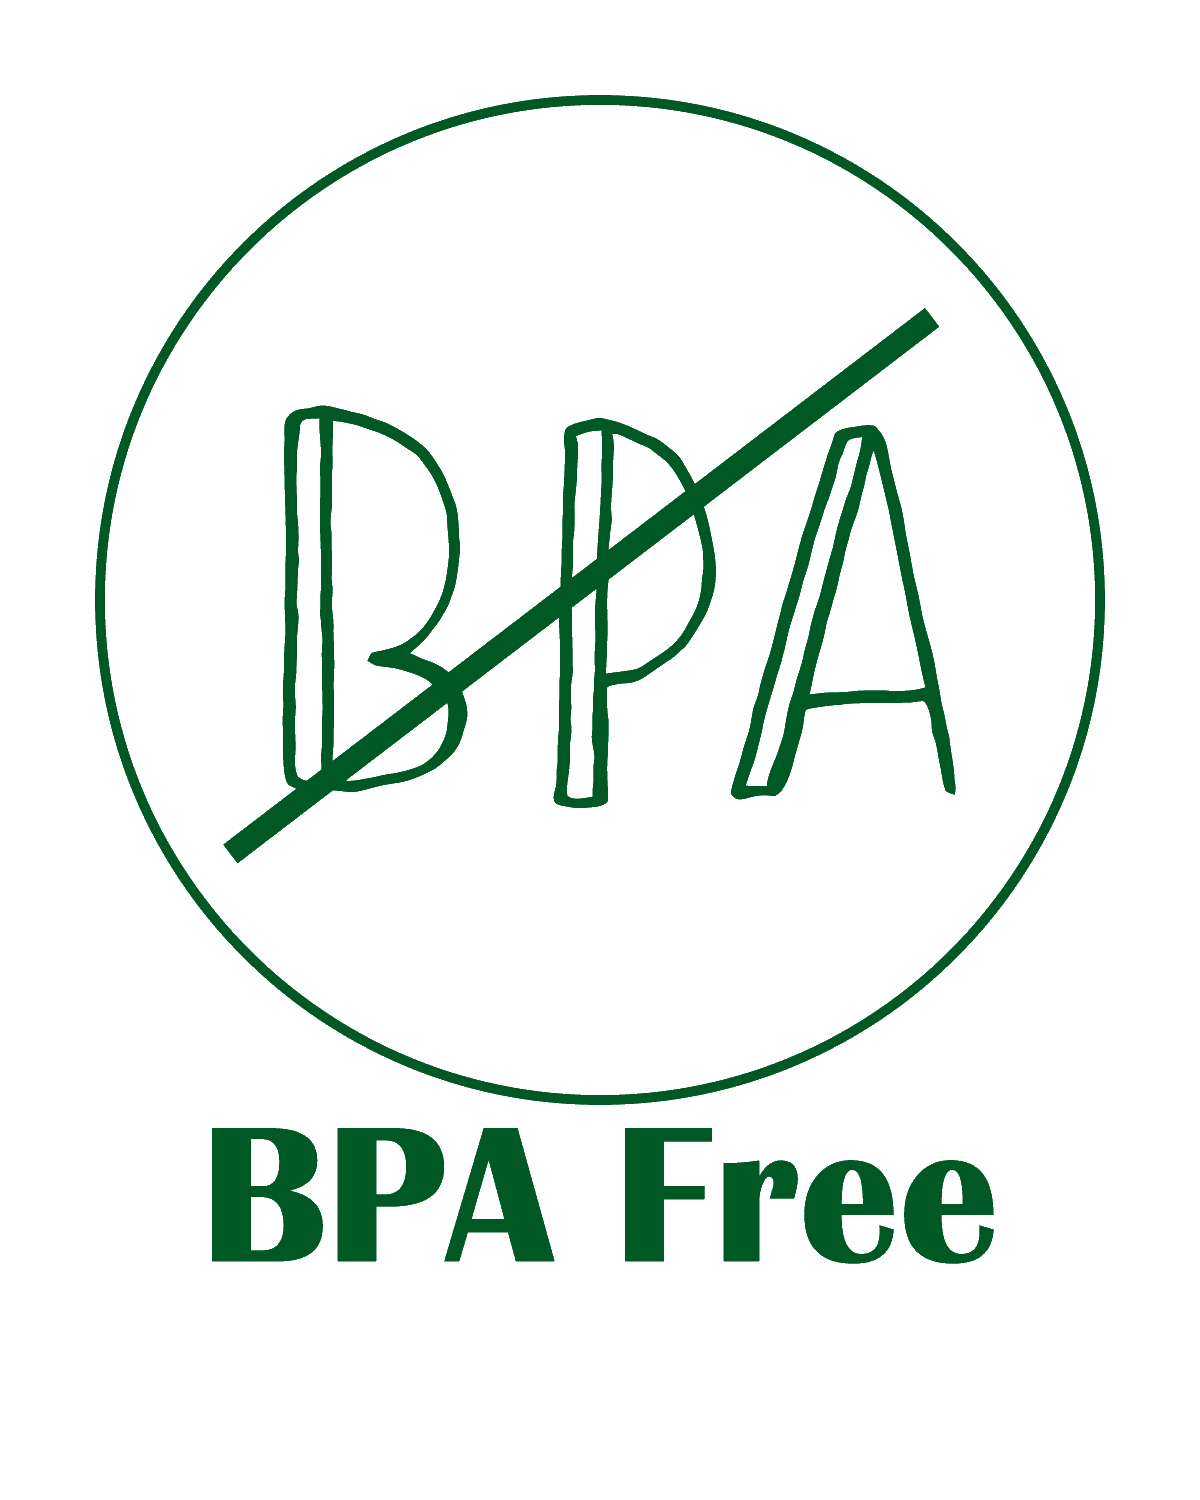 The Green Bundle BPA Free Logo